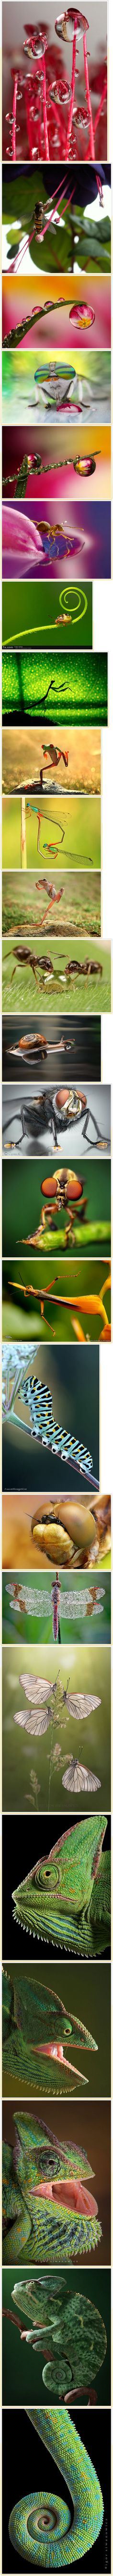 #Macro #Insects #Photography